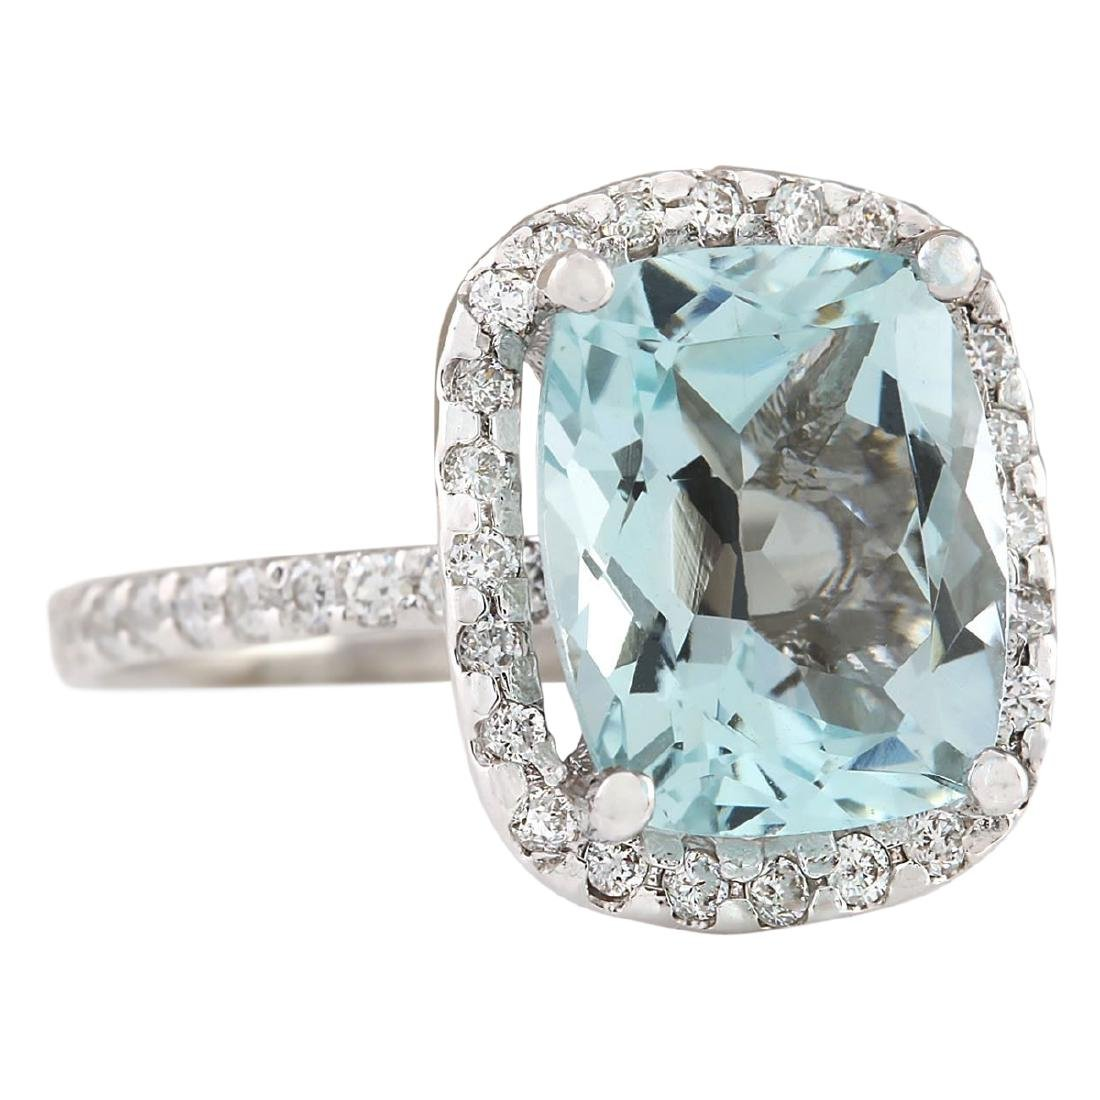 4.30 CTW Natural Aquamarine And Diamond Ring In 18K - 2